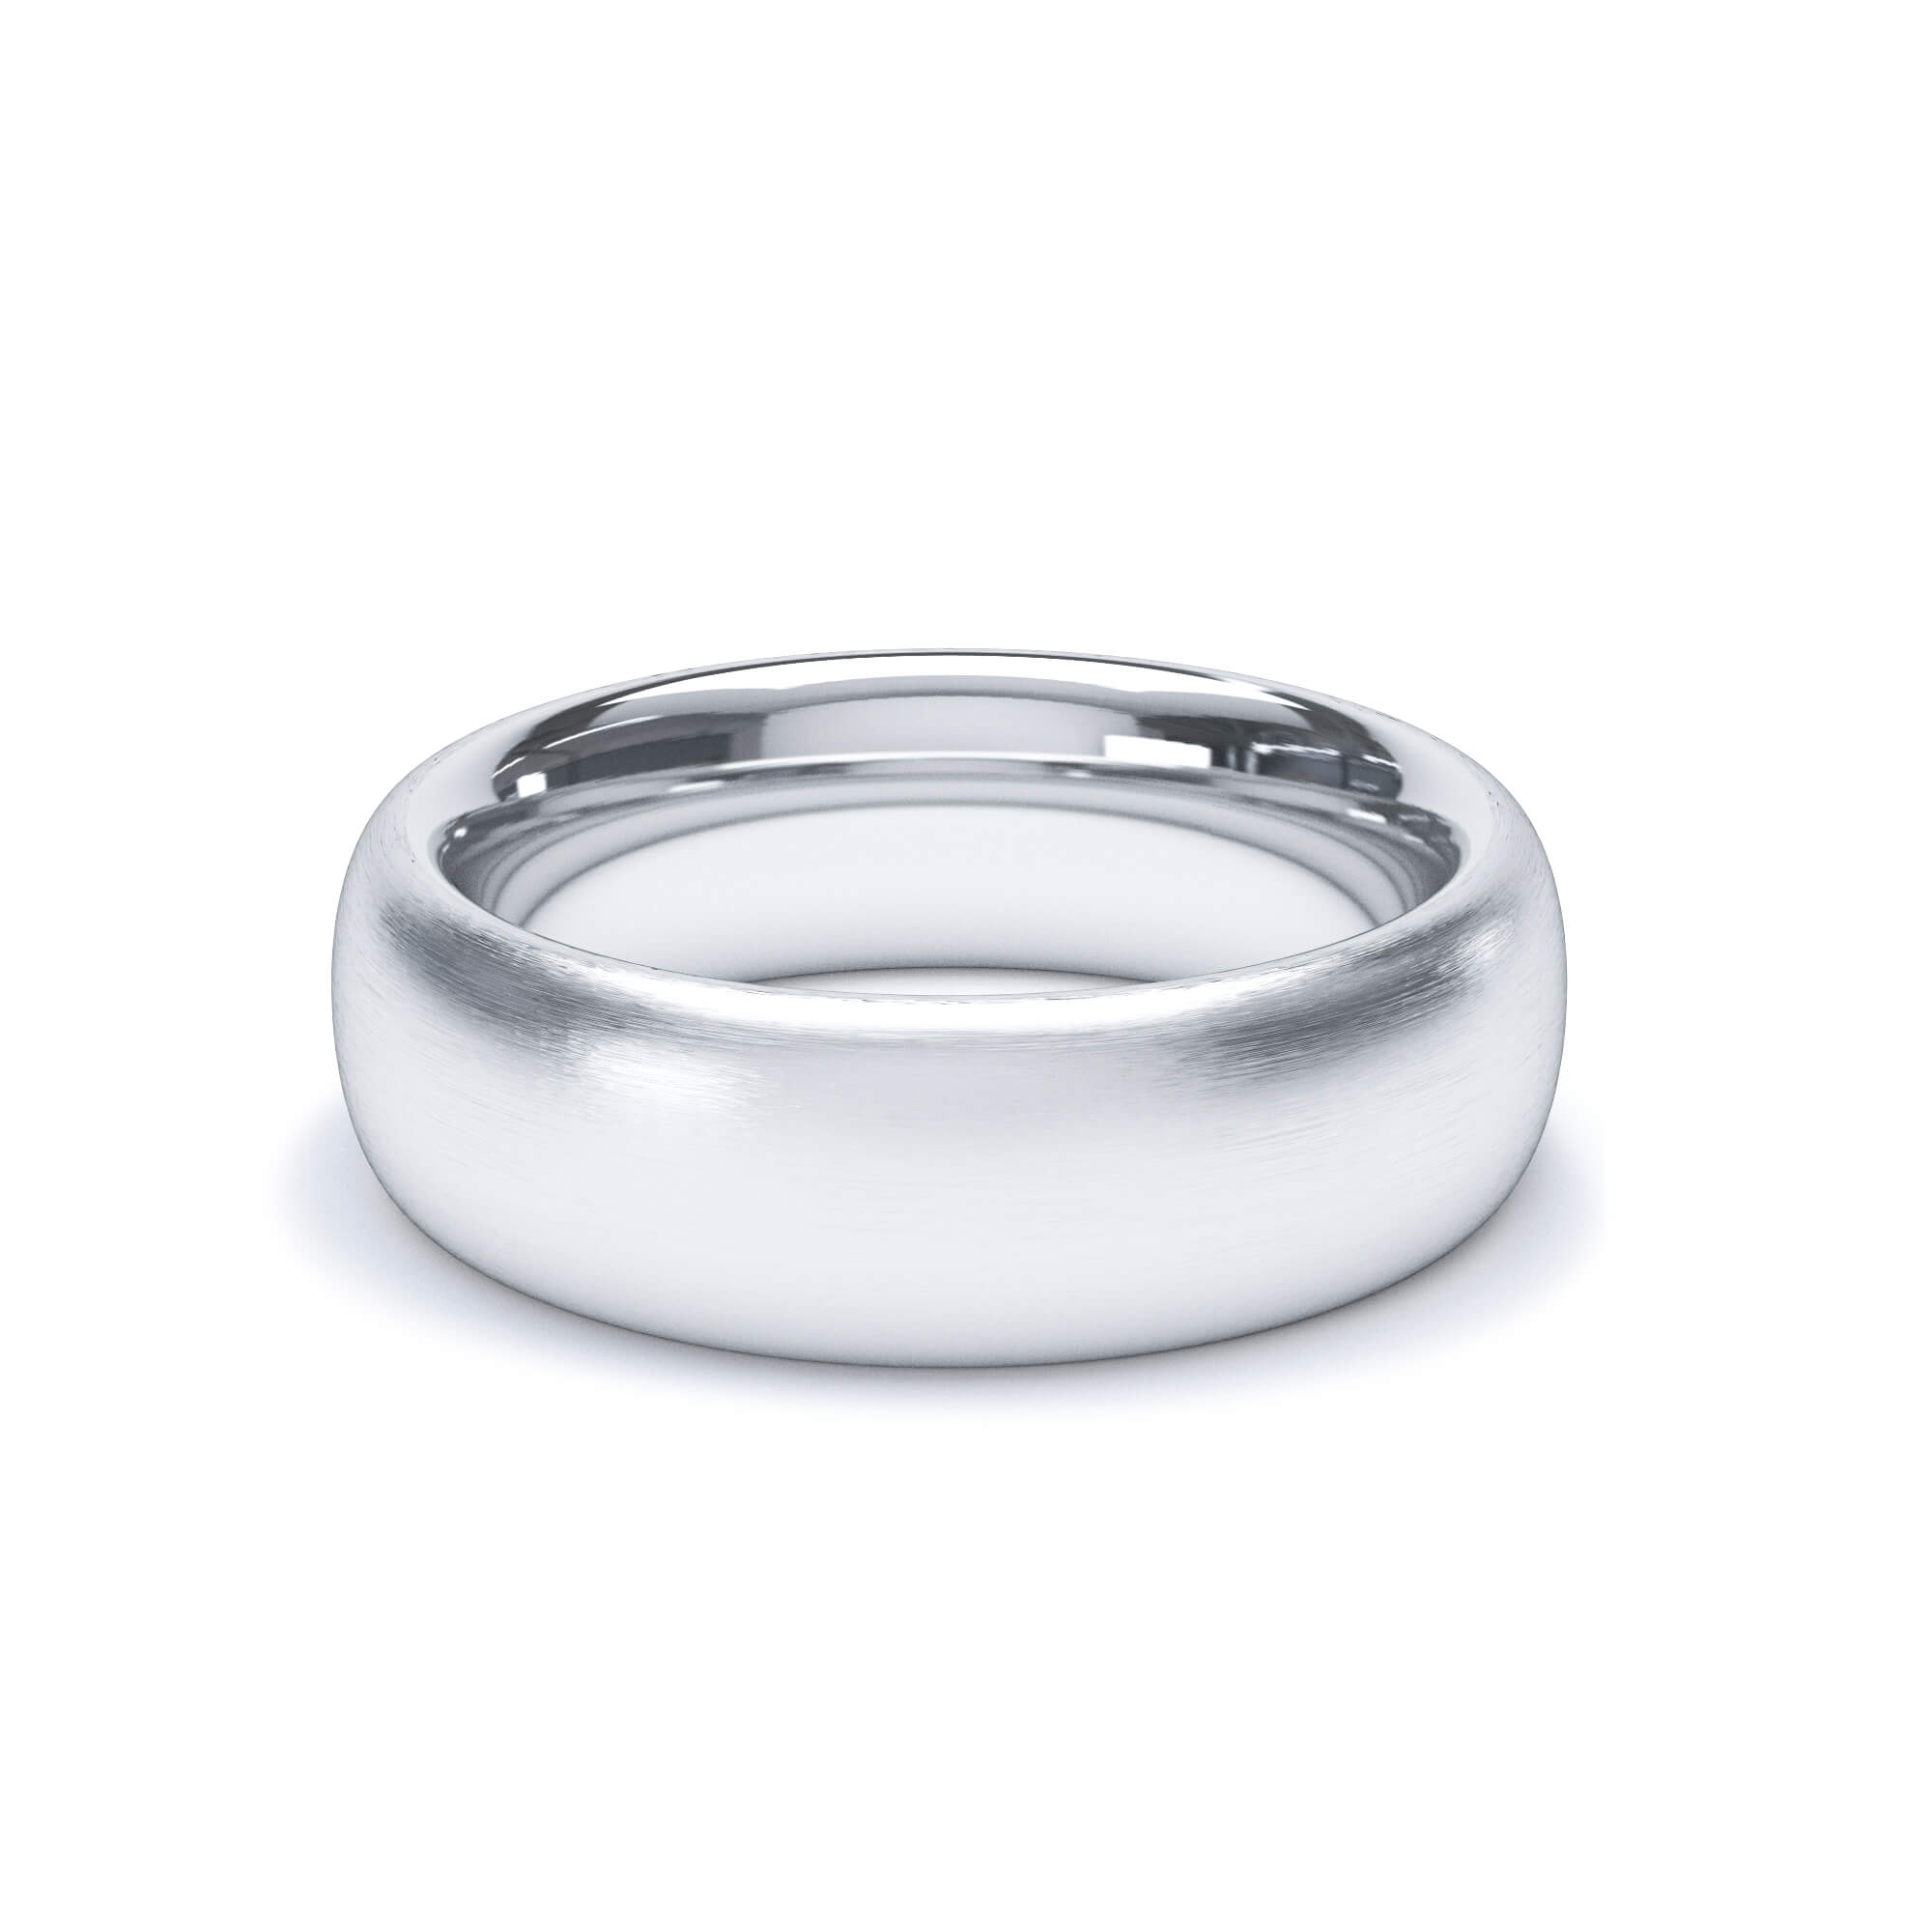 Satin Polish Wedding Band Regular Court Profile Platinum Wedding Bands Lily Arkwright